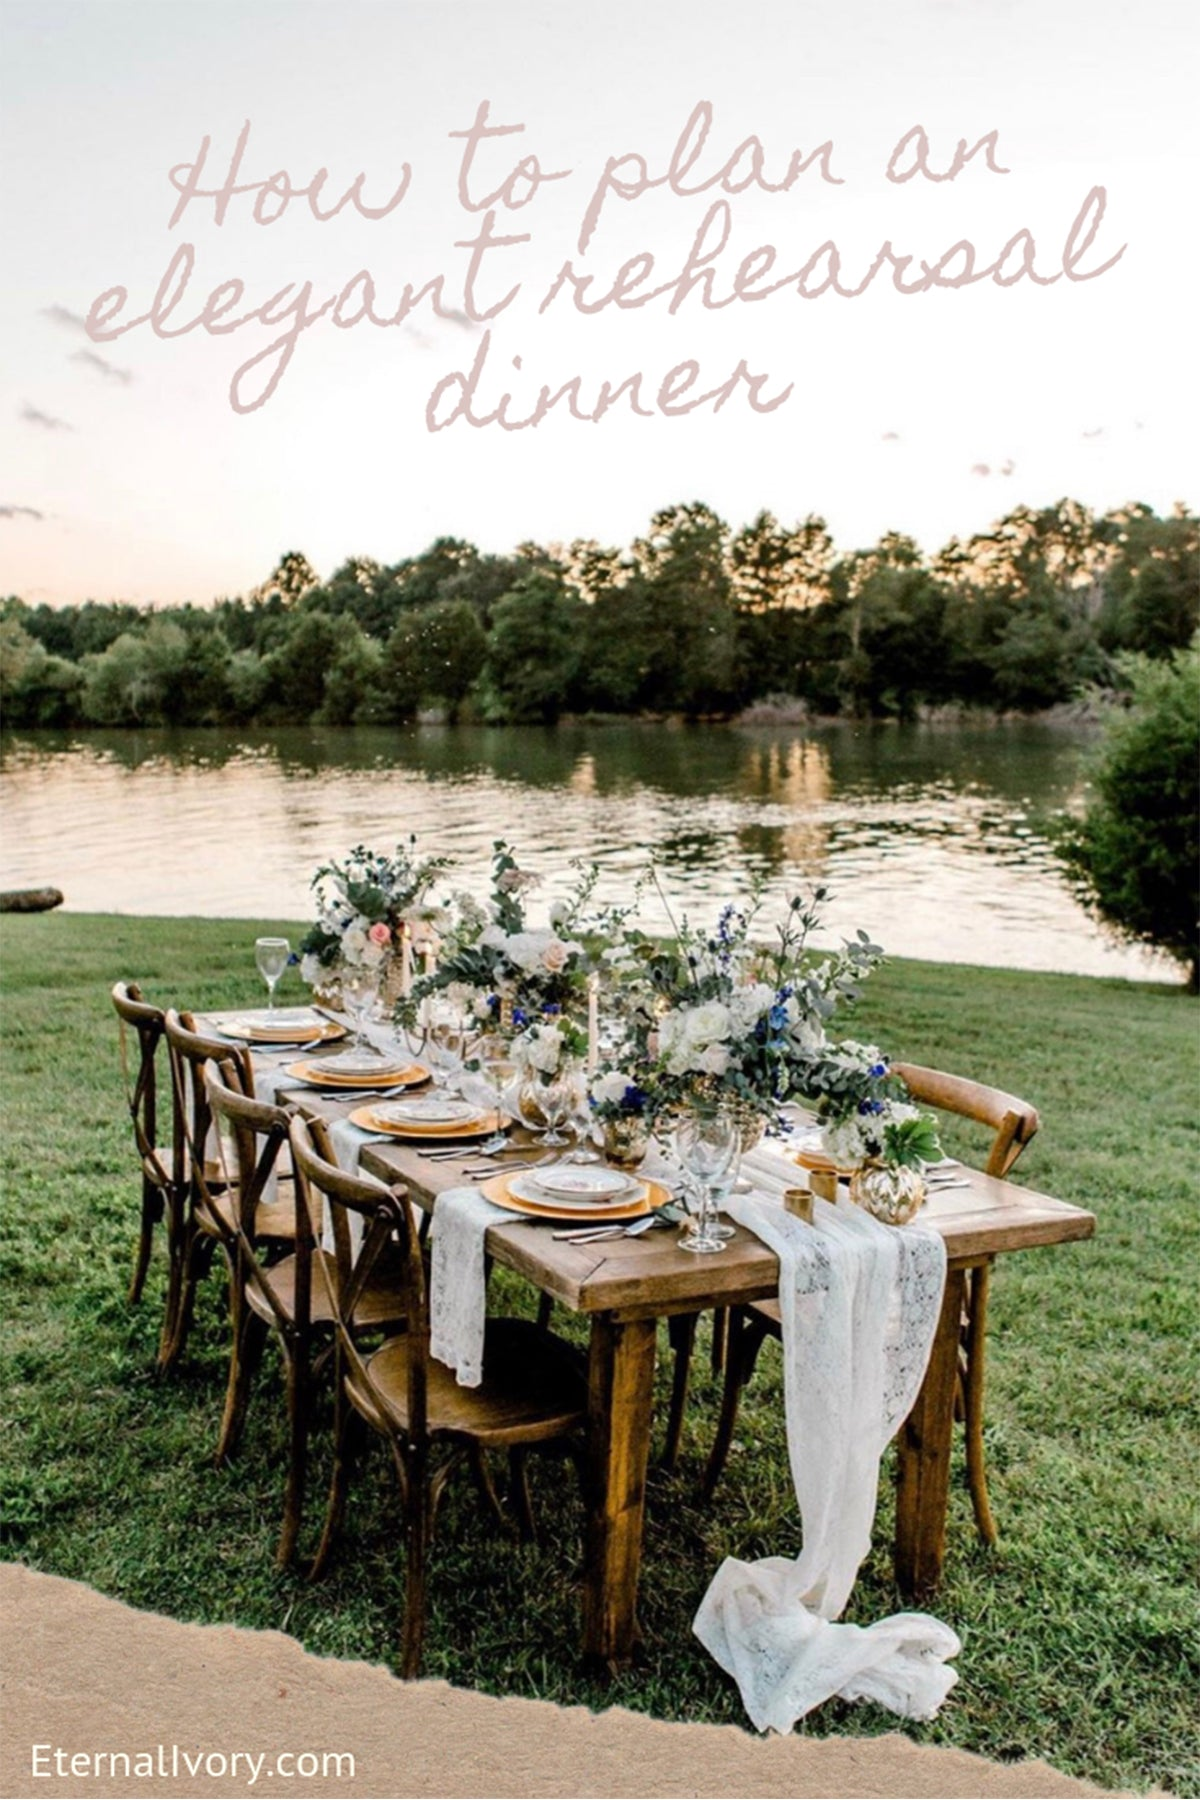 How to plan en elegant rehearsal dinner on a budget - Eternal Ivory